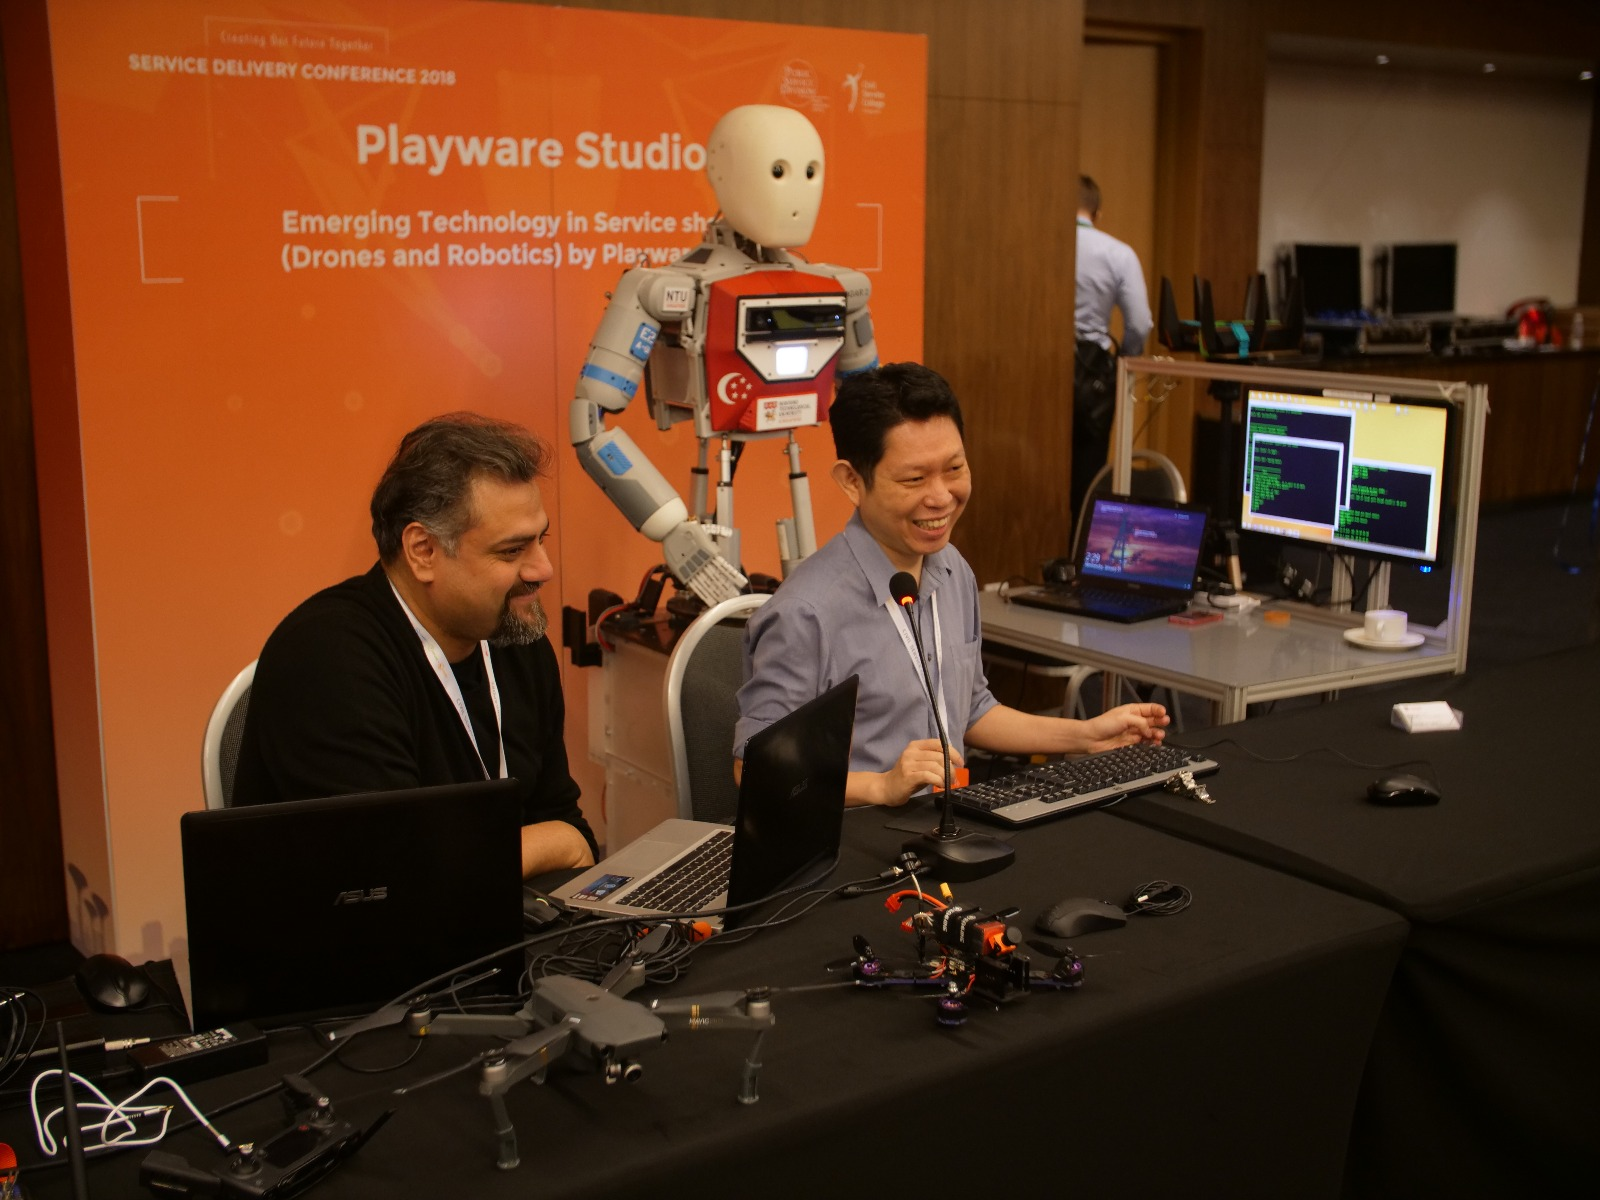 Drones showcase by Playware at SDC 2018